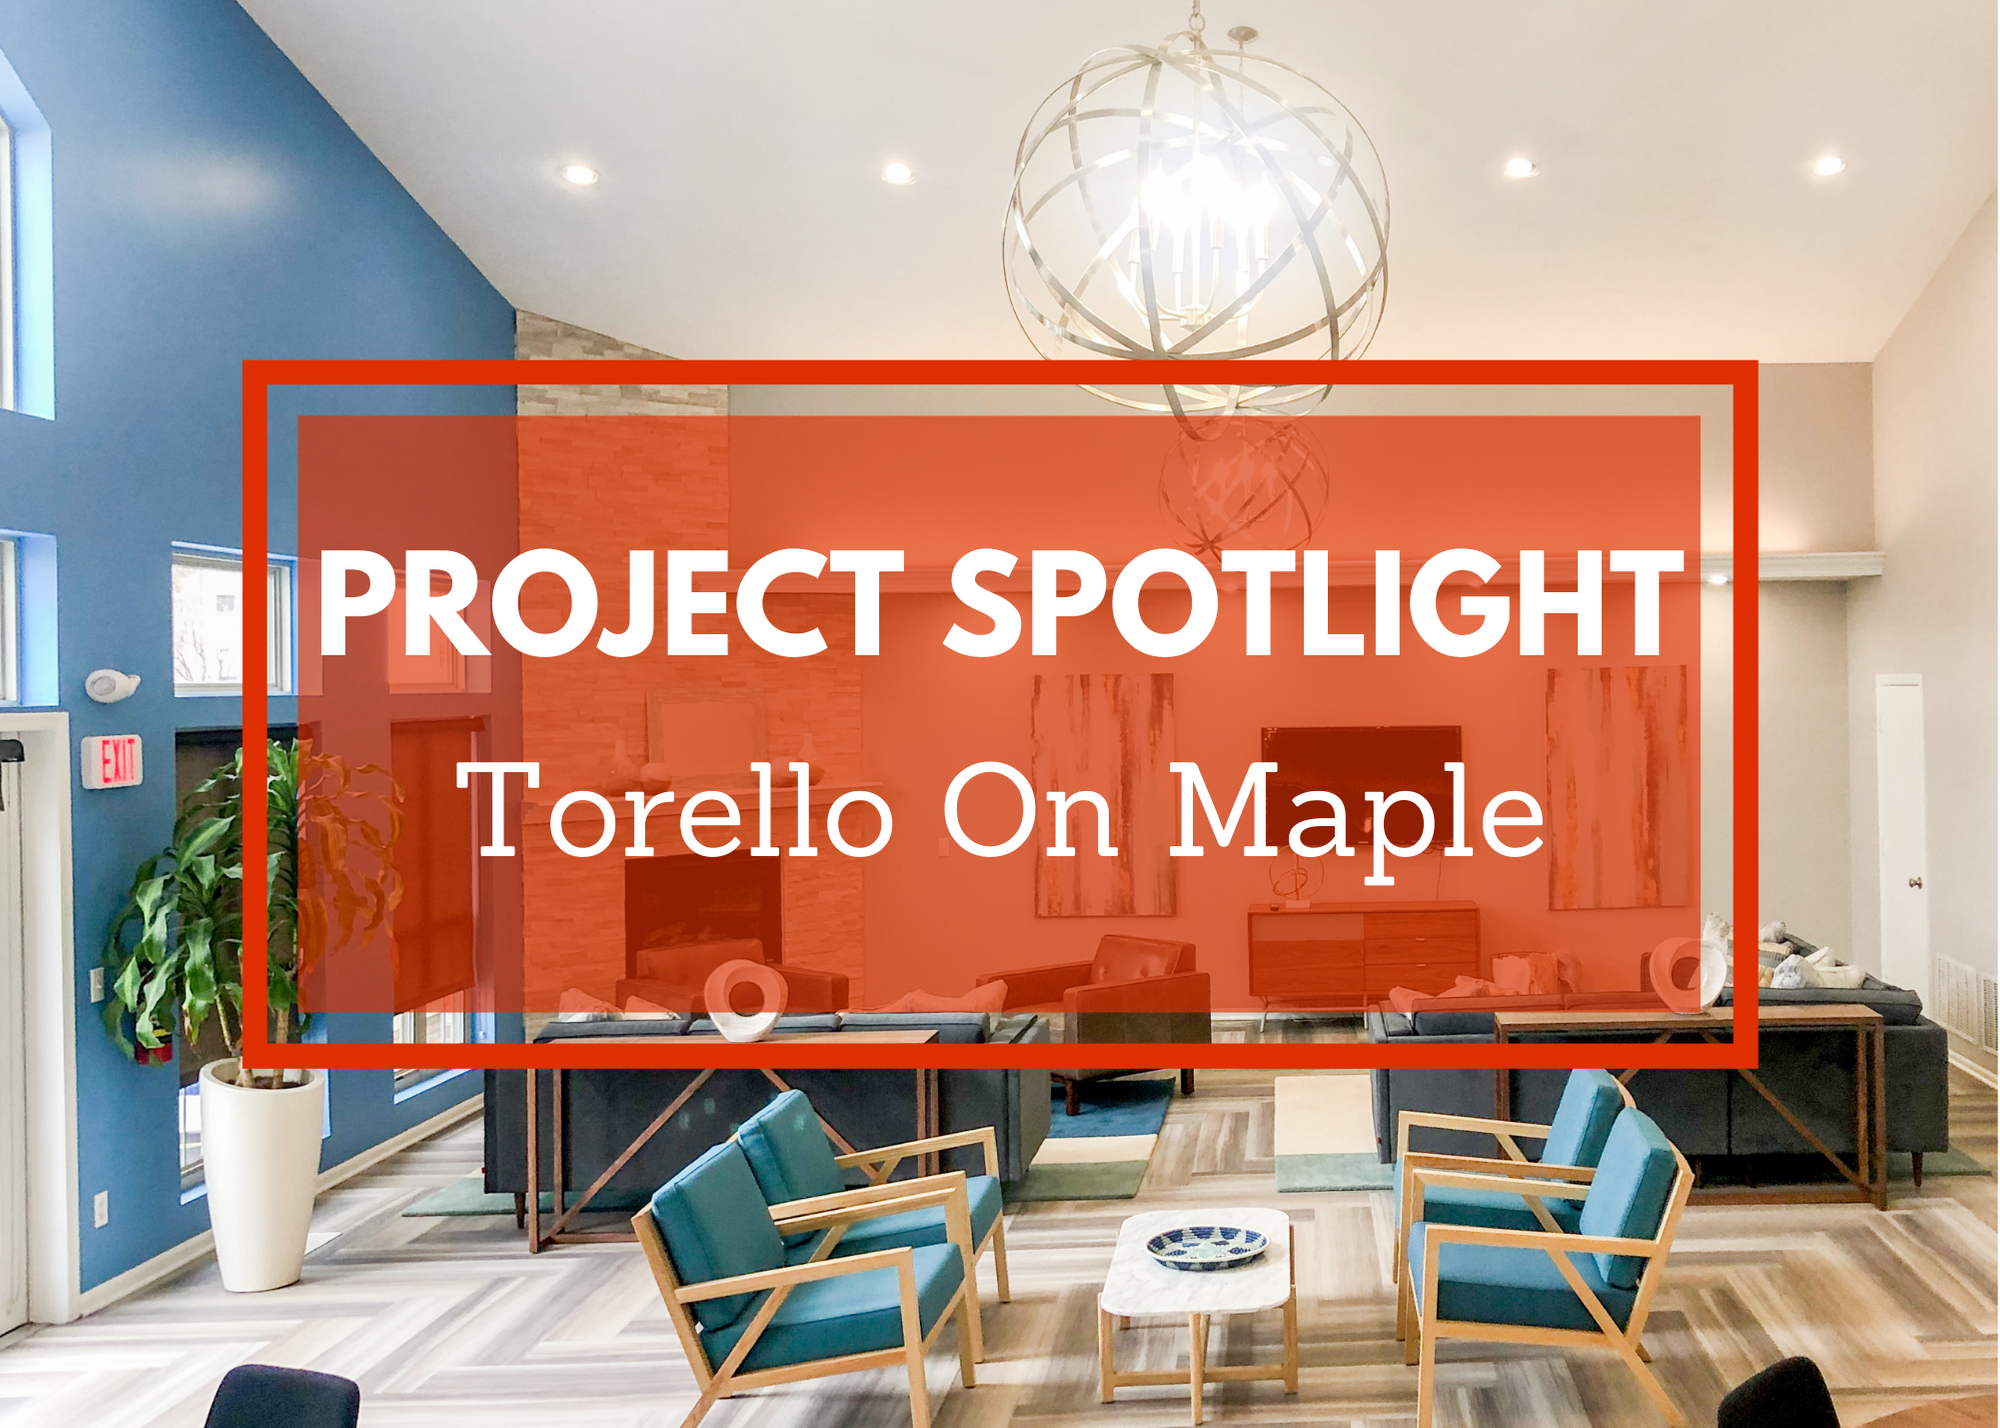 Project Spotlight: Torello on Maple